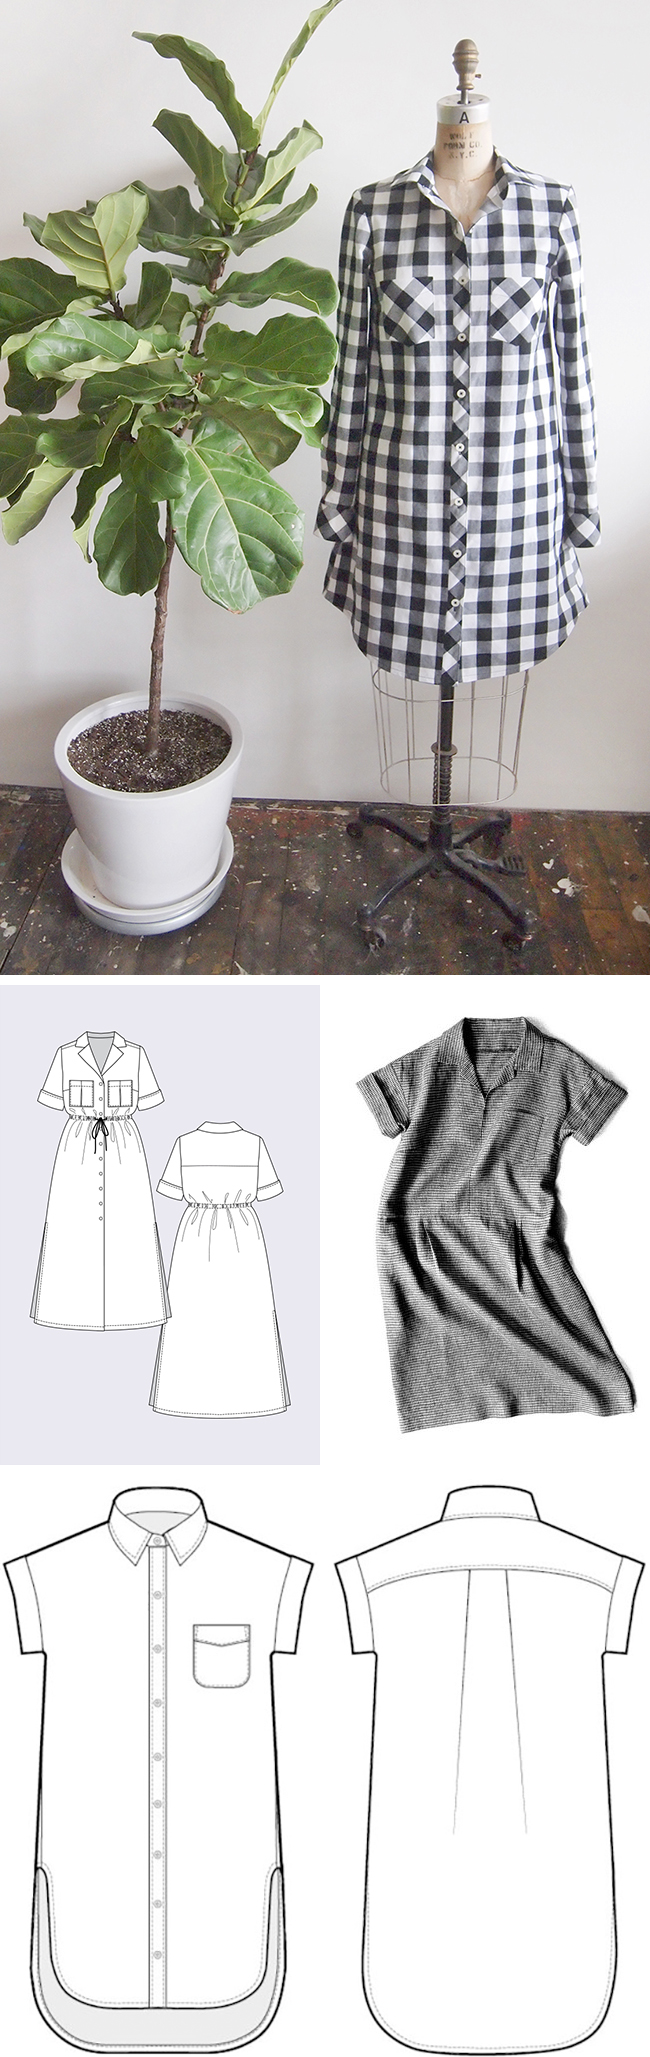 Make Your Own Basics: The shirt dress